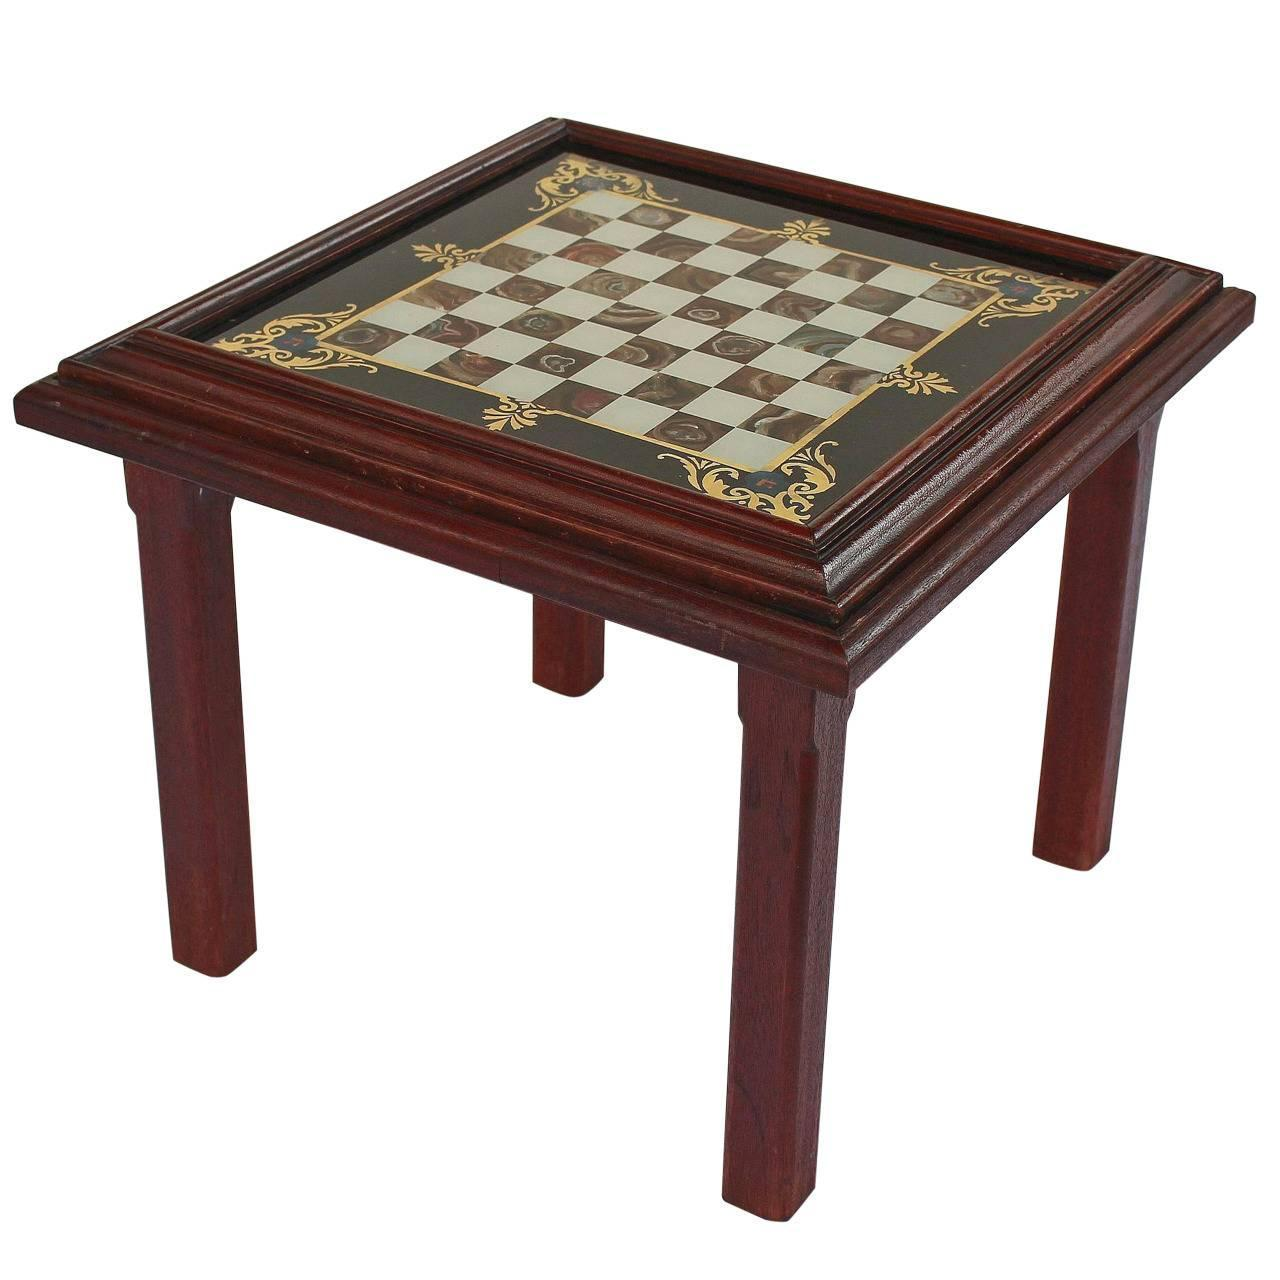 English low table with chess board top for sale at 1stdibs for Furniture board